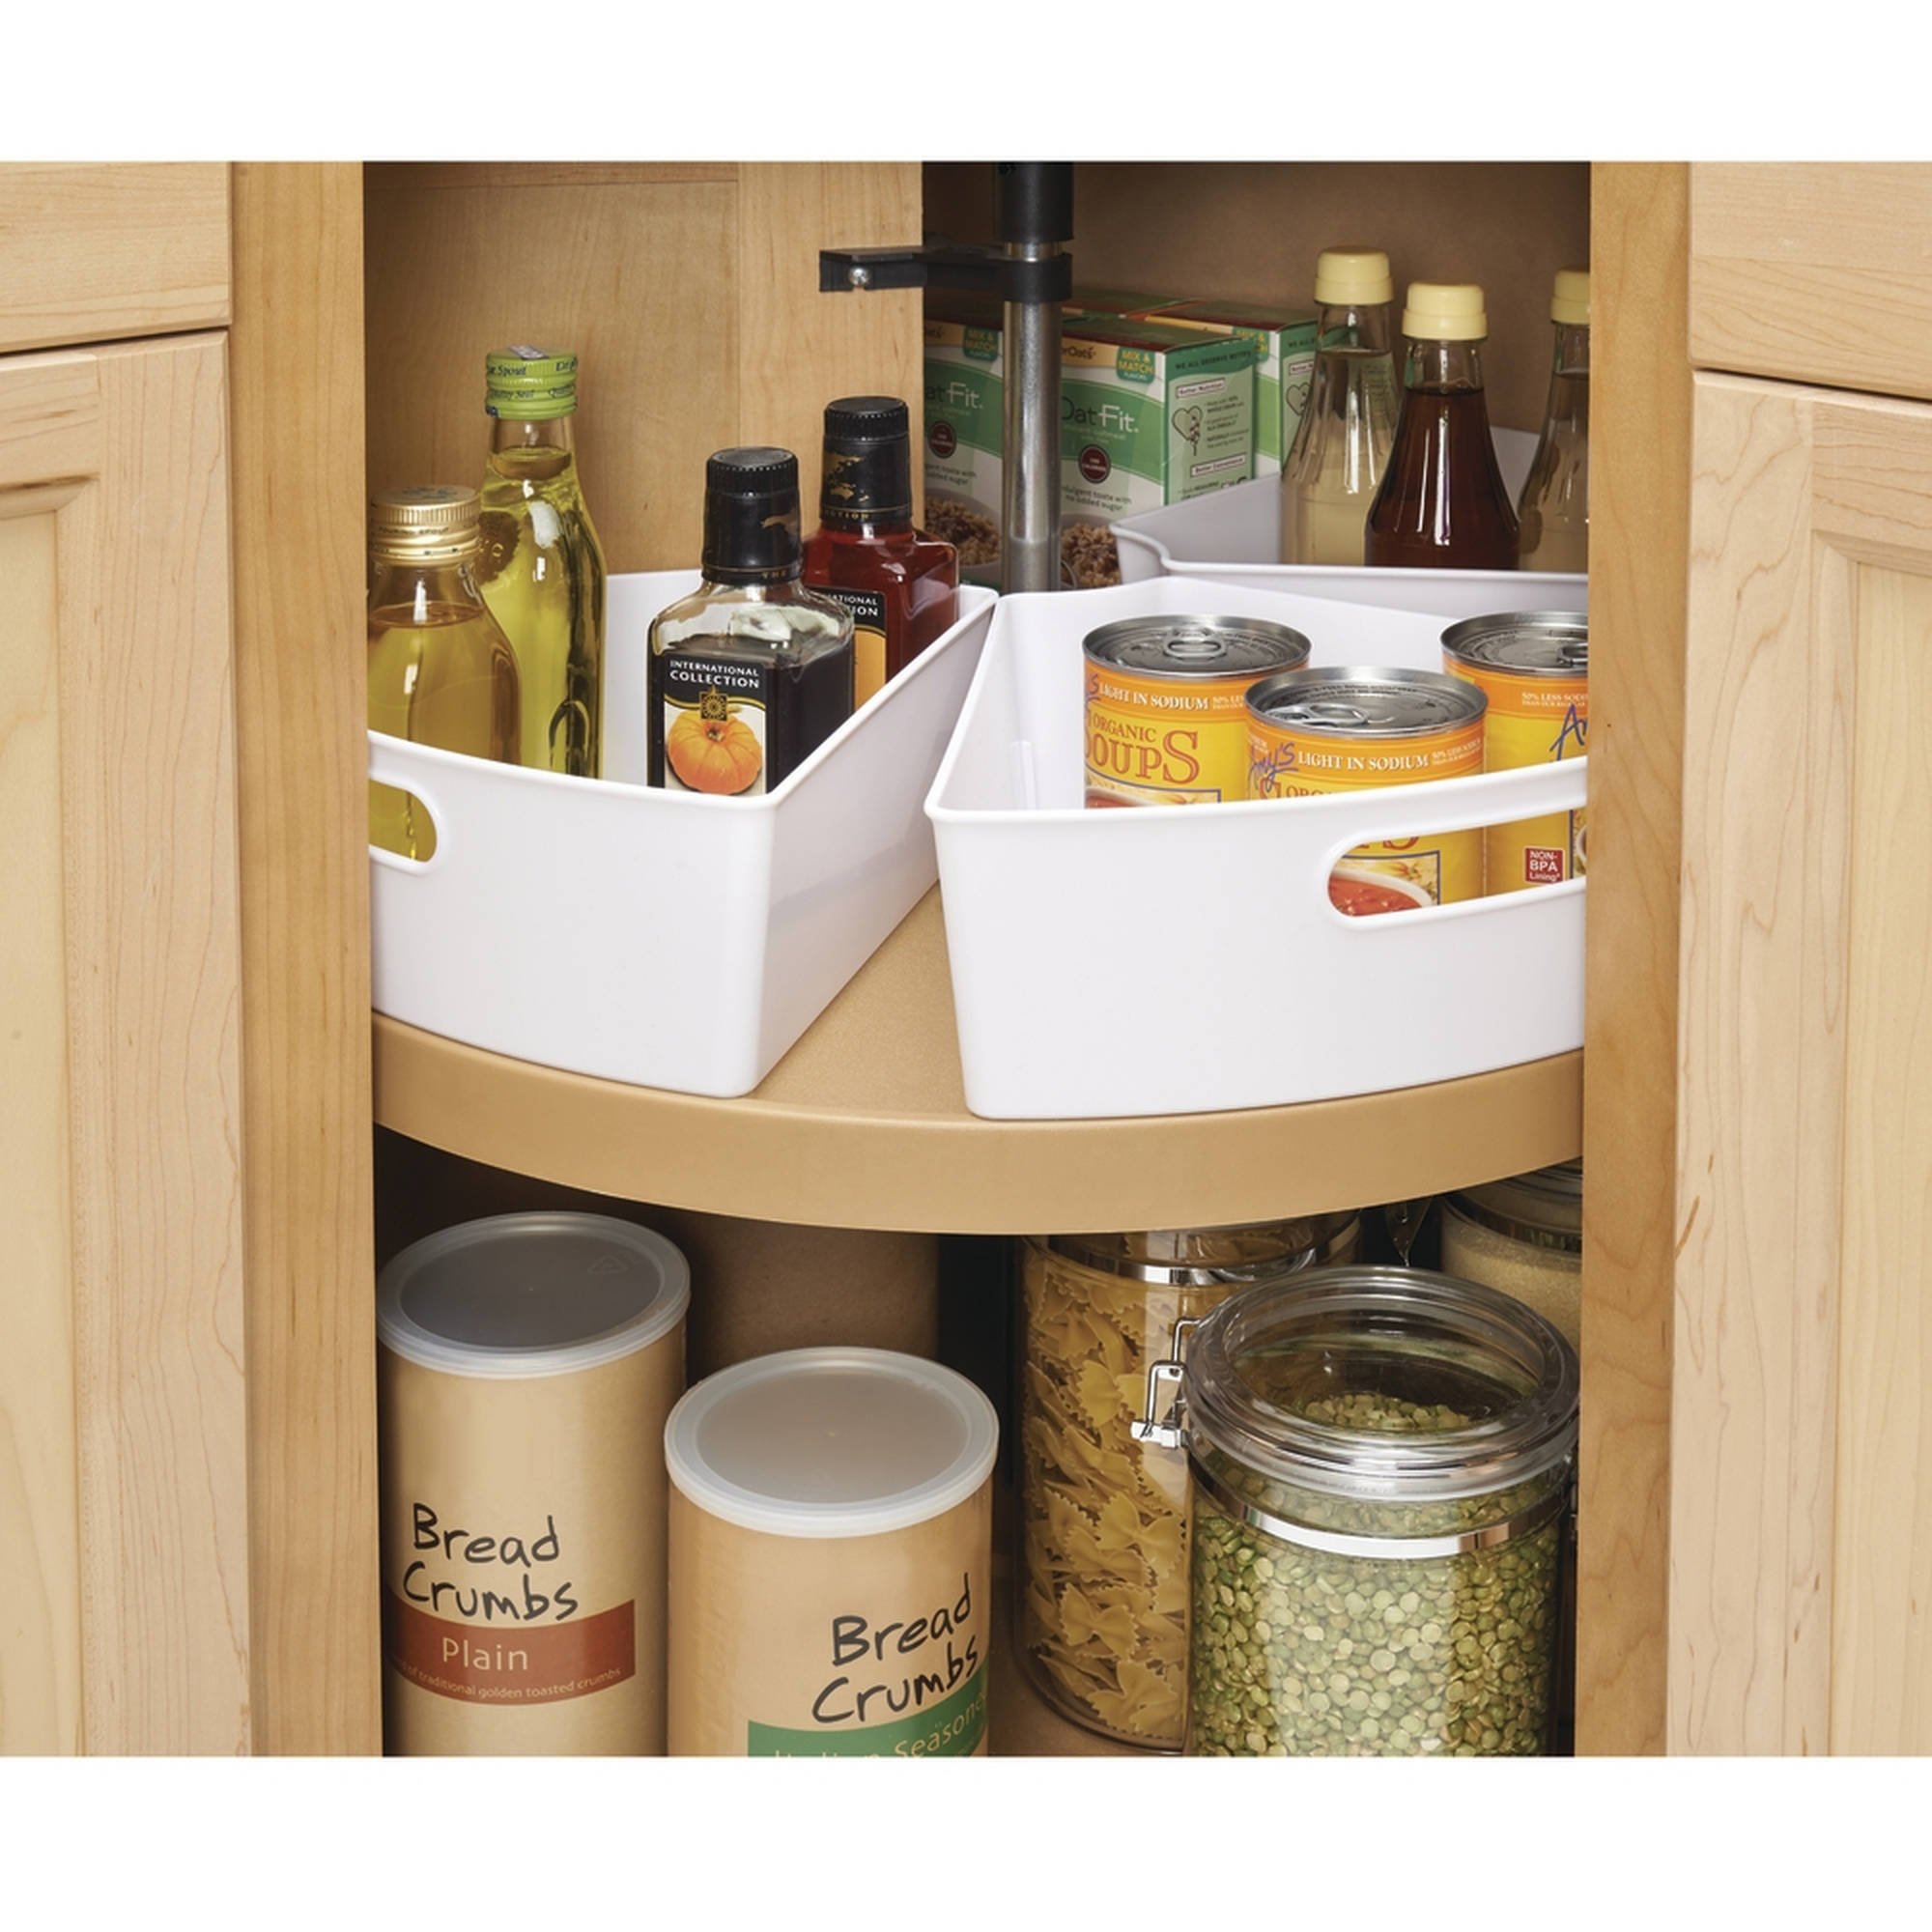 InterDesign Lazy Susan kitchen Cabinet Organizer Storage